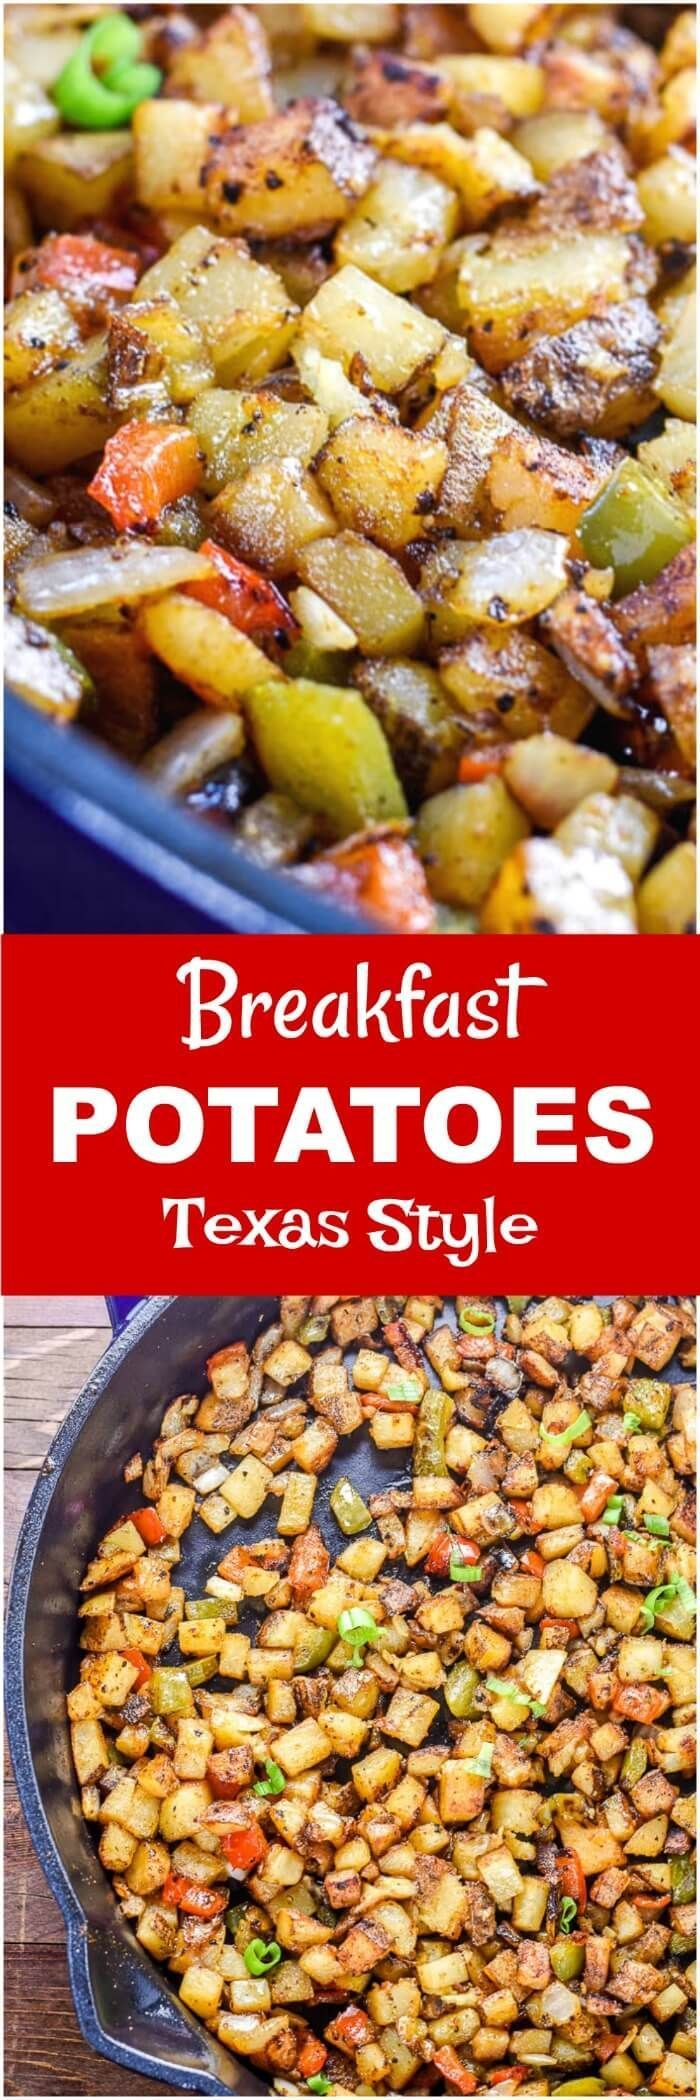 These Breakfast Potatoes are bites of roasted potatoes spiced up Texas style with taco seasoning, chopped onions, red bell peppers, and jalapenos, and will kick-start your breakfast or brunch.